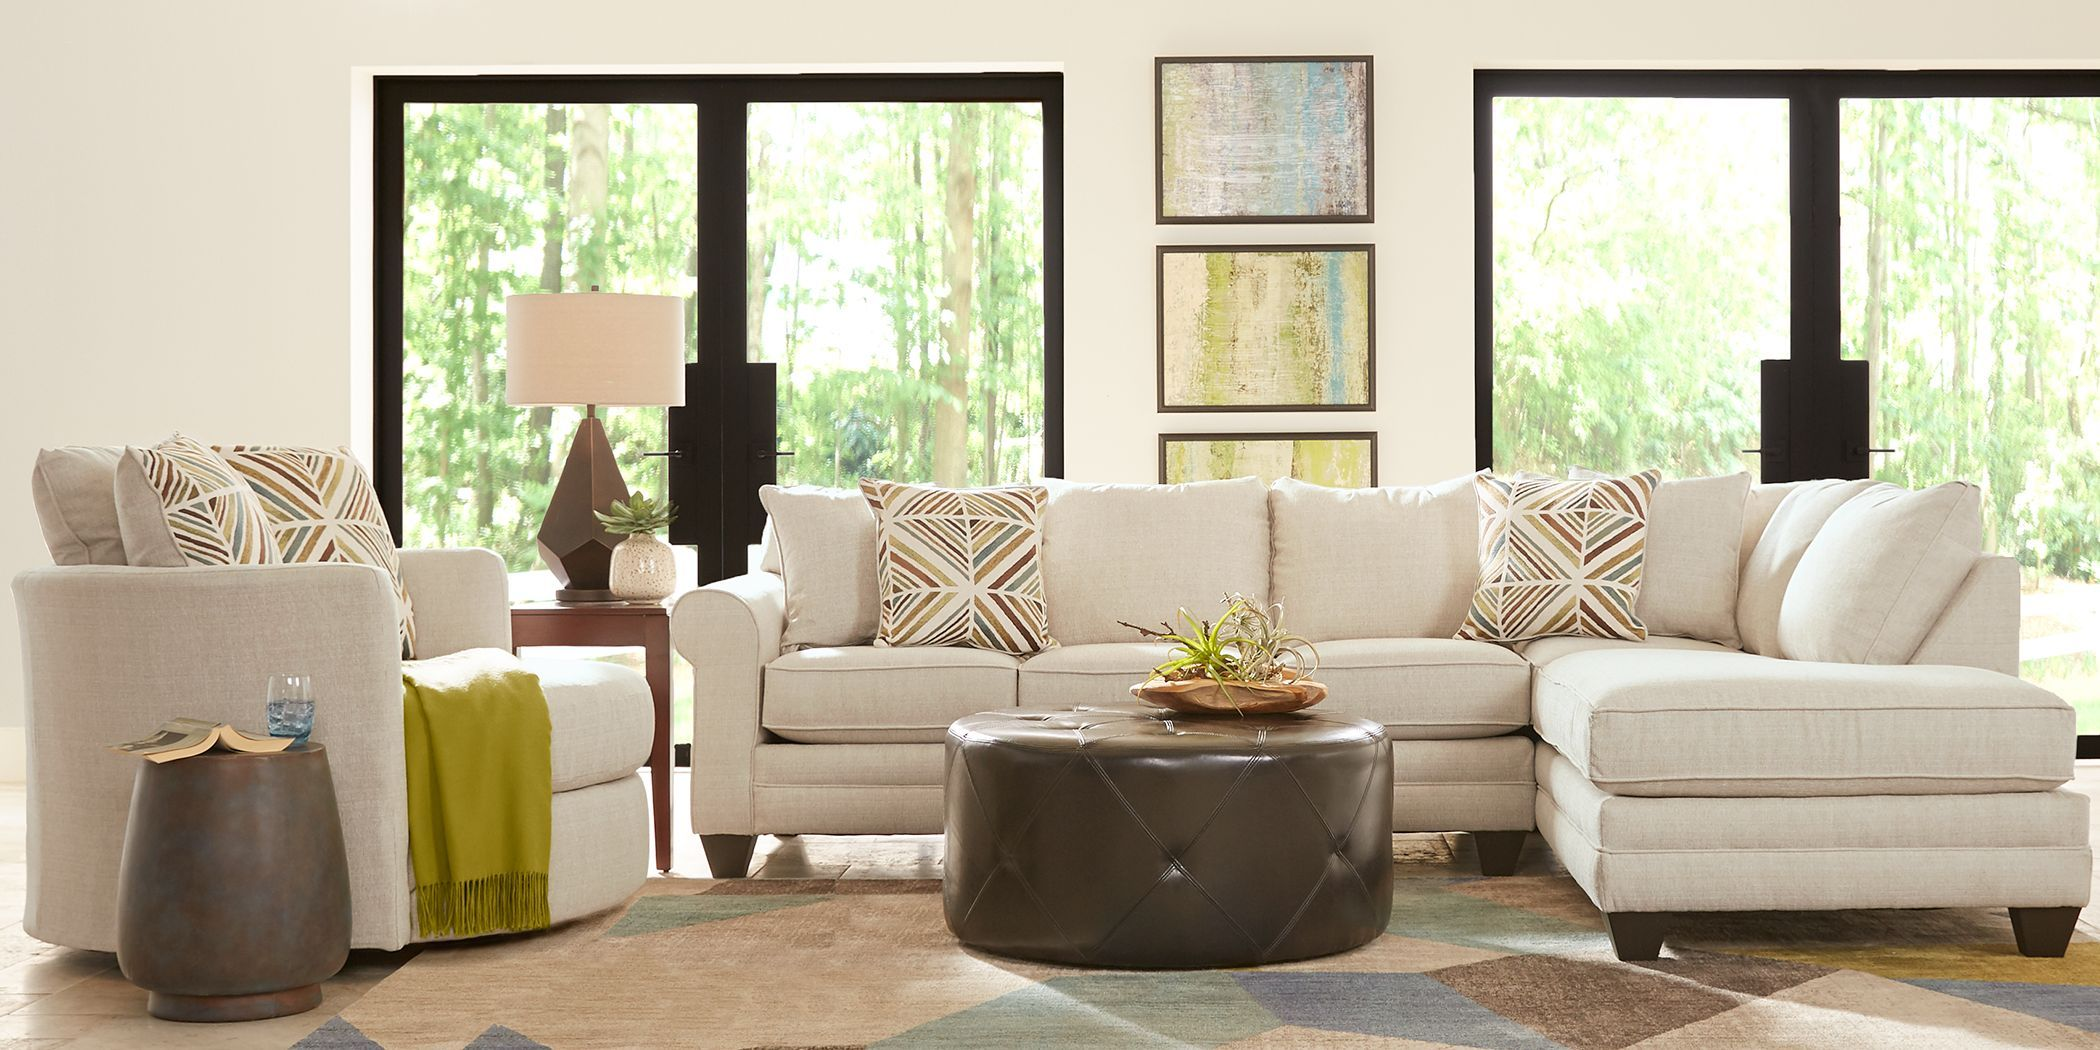 Ashebelle Beige 2 Pc Sectional Rooms To Go In 2020 Living Room